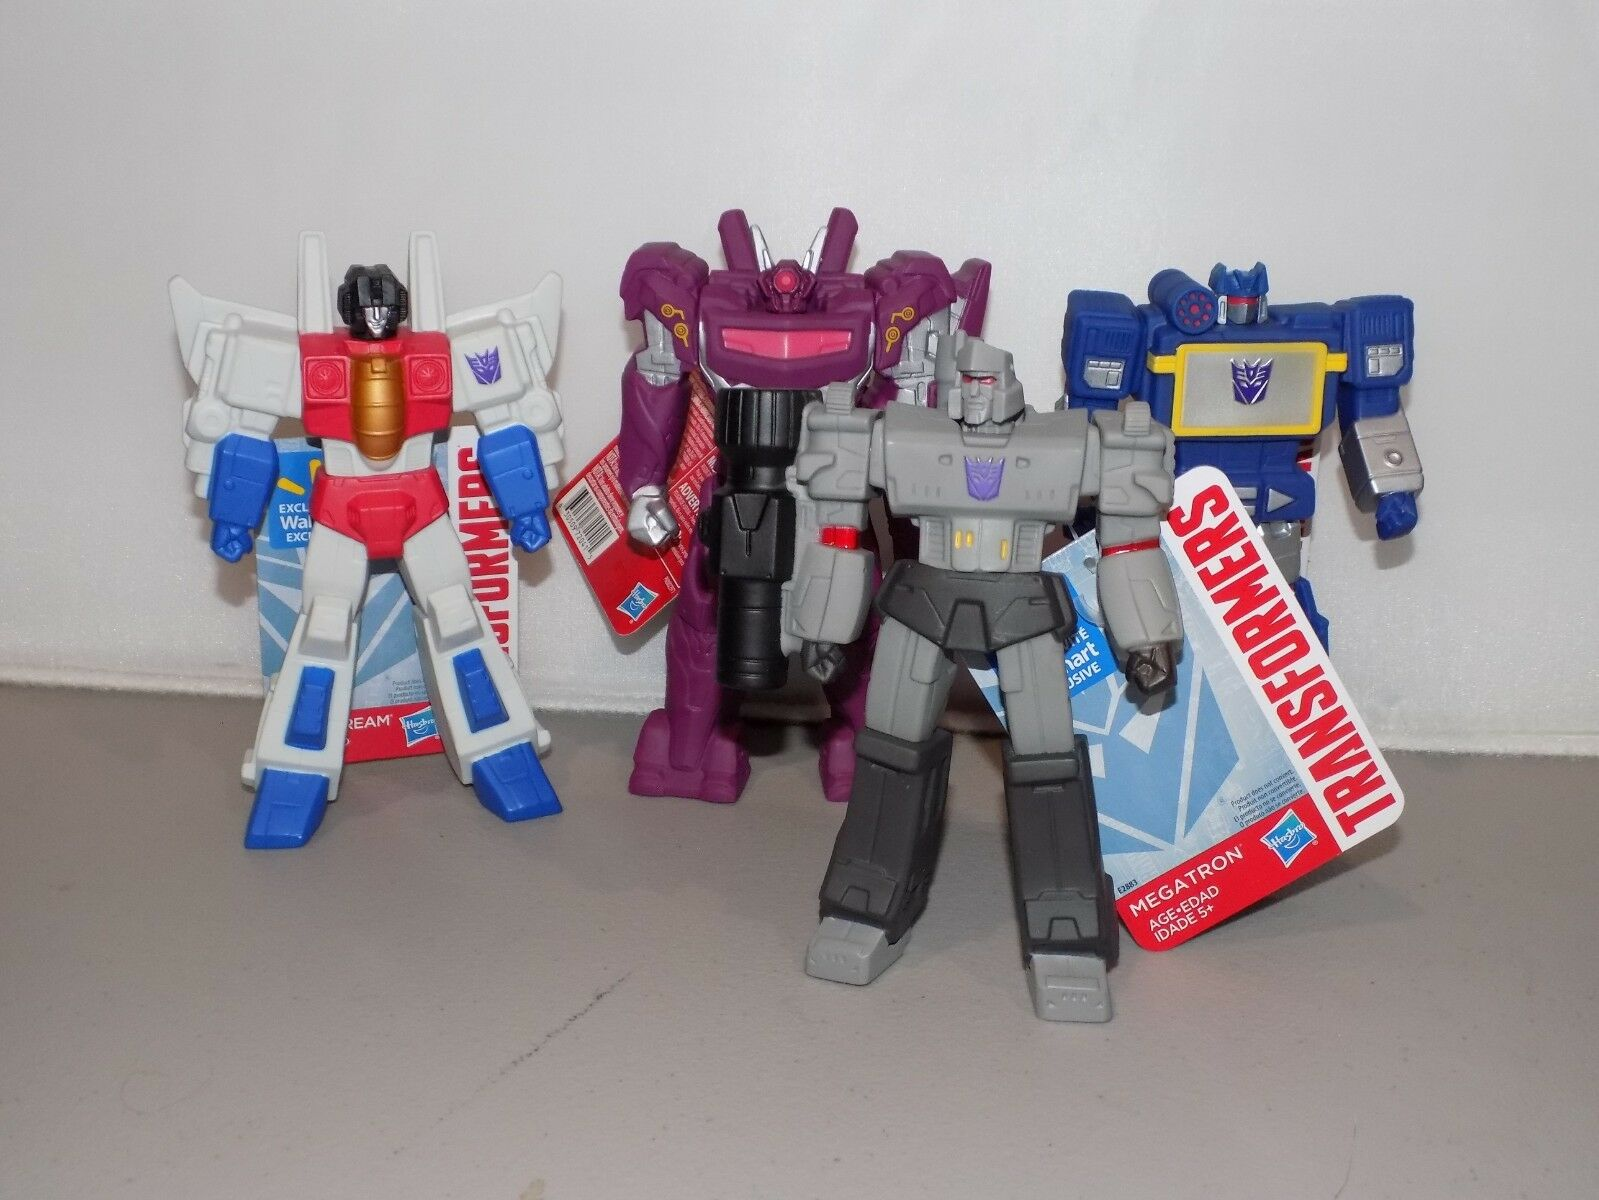 Transformers 6 inch figures PVC stiff arms Wal Mart Exclusive 4 Decepticons